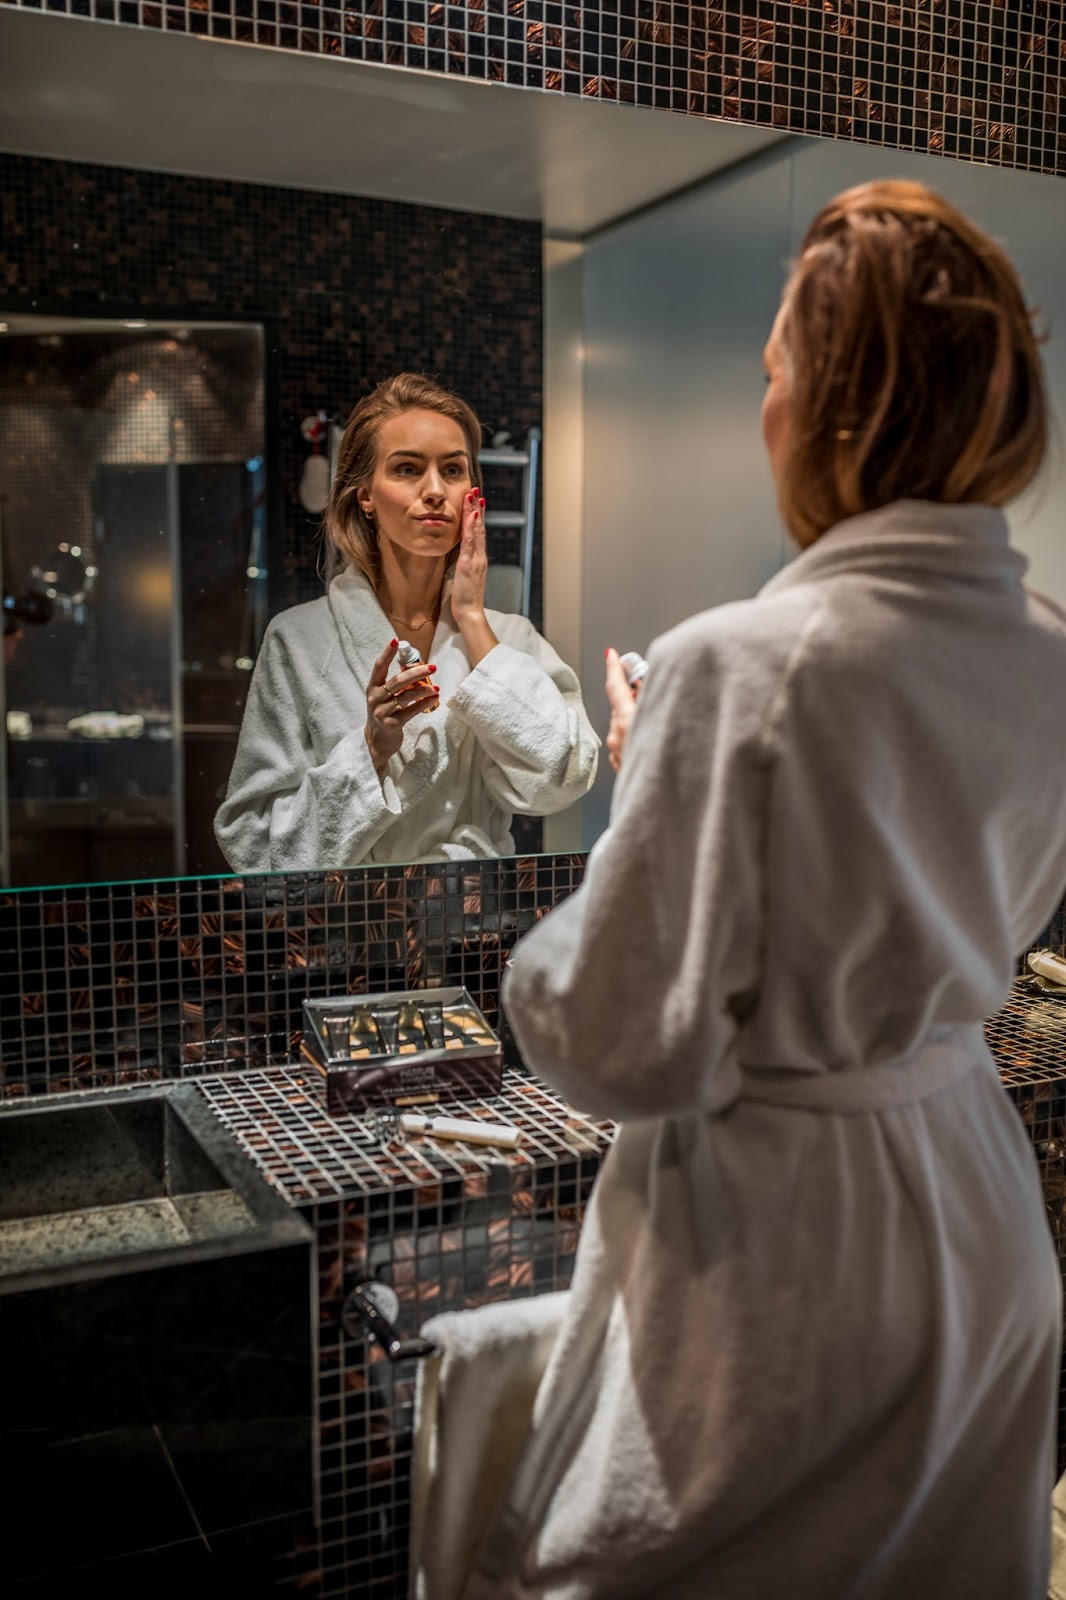 bathroom mirror robe skincare photography